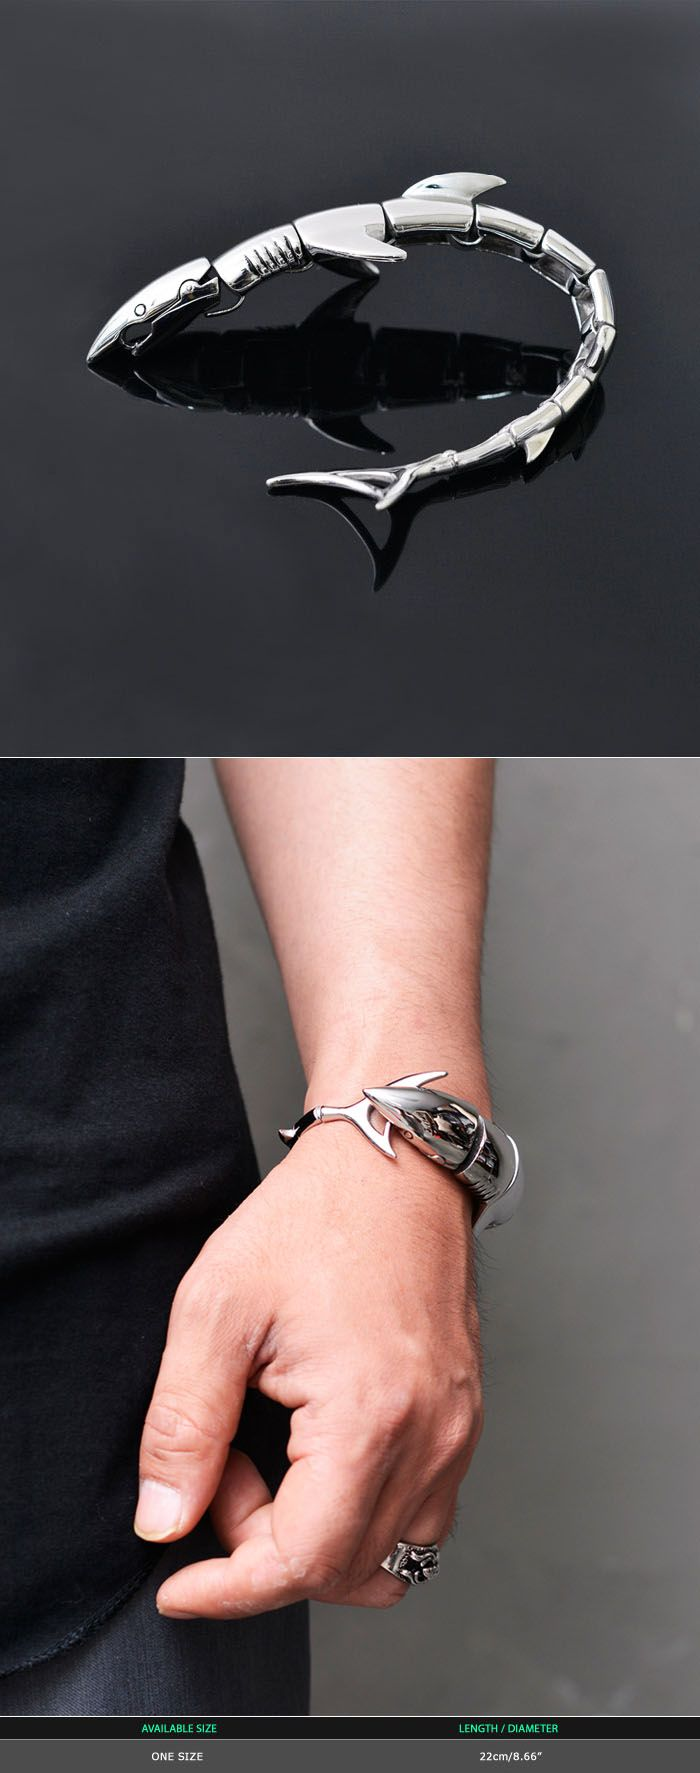 Accessories :: Bracelets :: Full Shark Stainless Steel Cuff-Bracelet 225 - Mens Fashion Clothing For An Attractive Guy Look